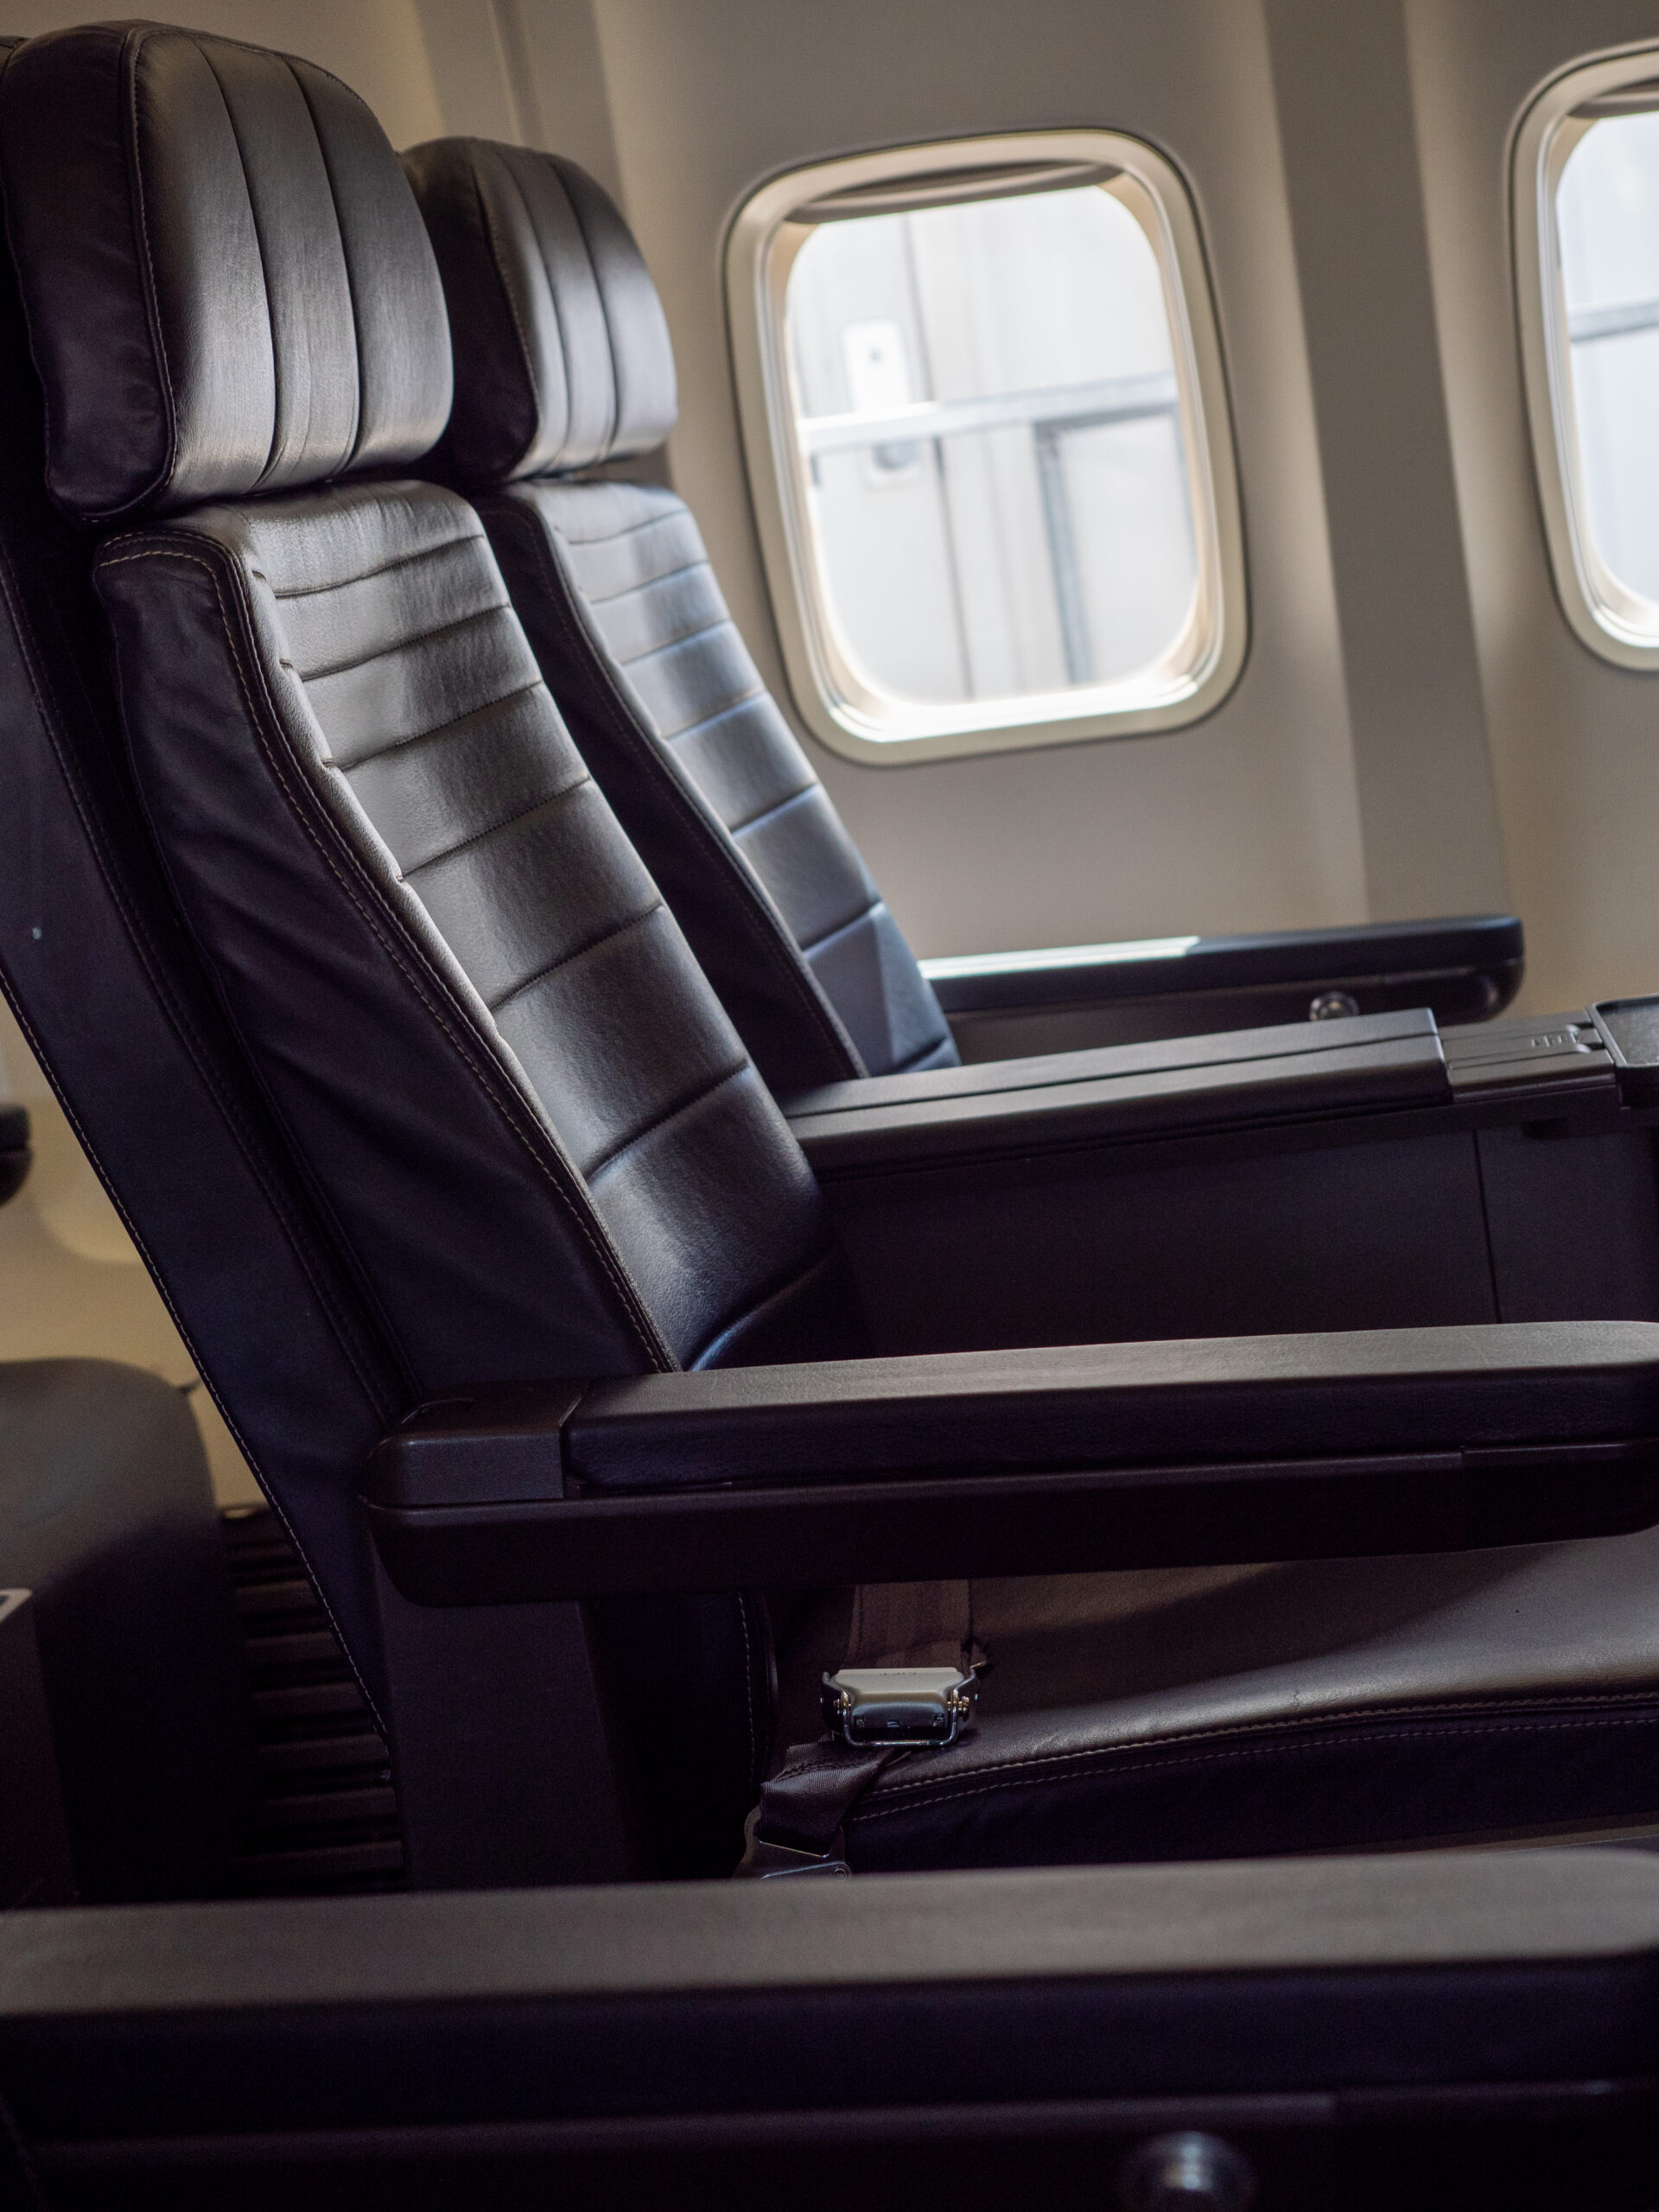 Empty first class window and aisle seat during the Coronavirus pandemic. Airline industry struggles as Americans are told to stay home to slow the spread of the disease.